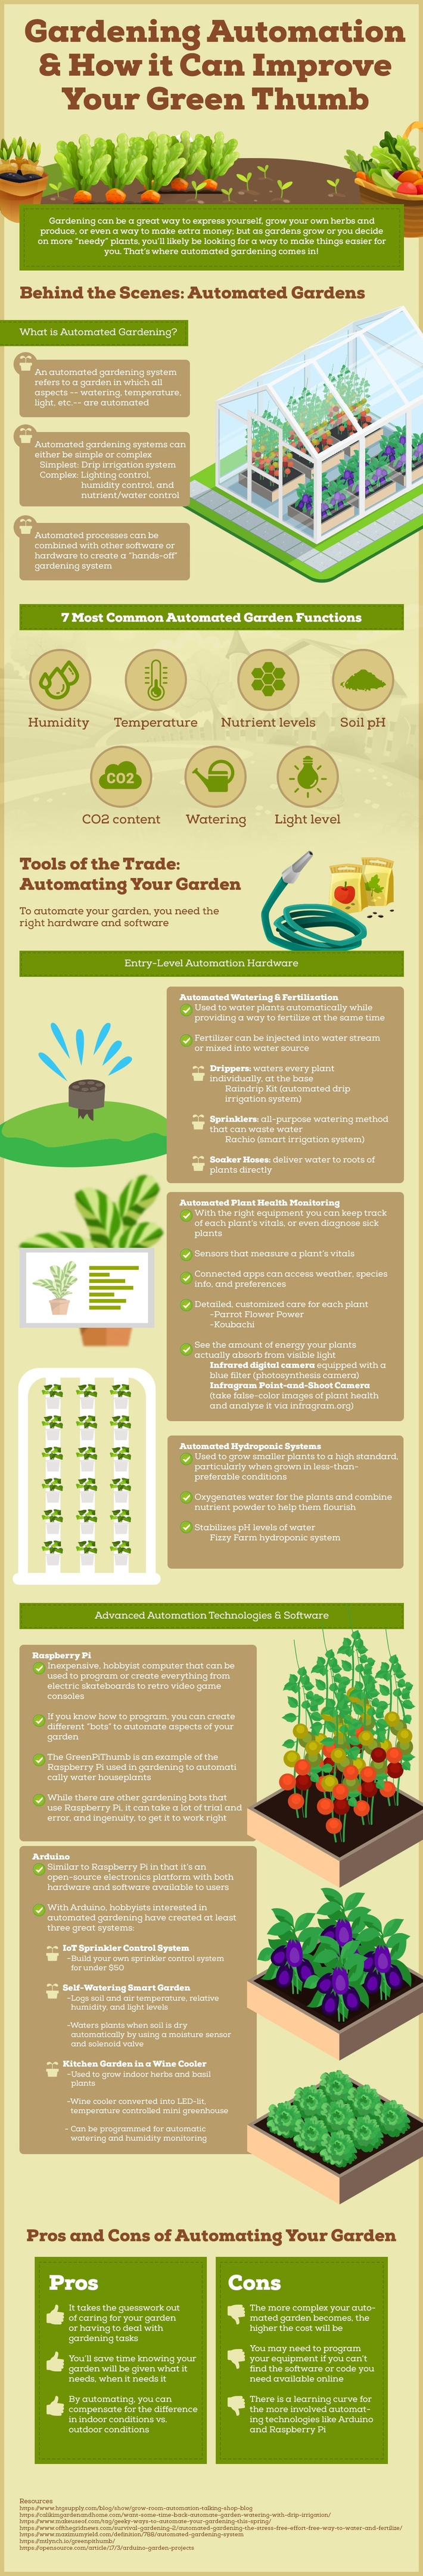 Gardening Automation & How it Can Improve Your Green Thumb